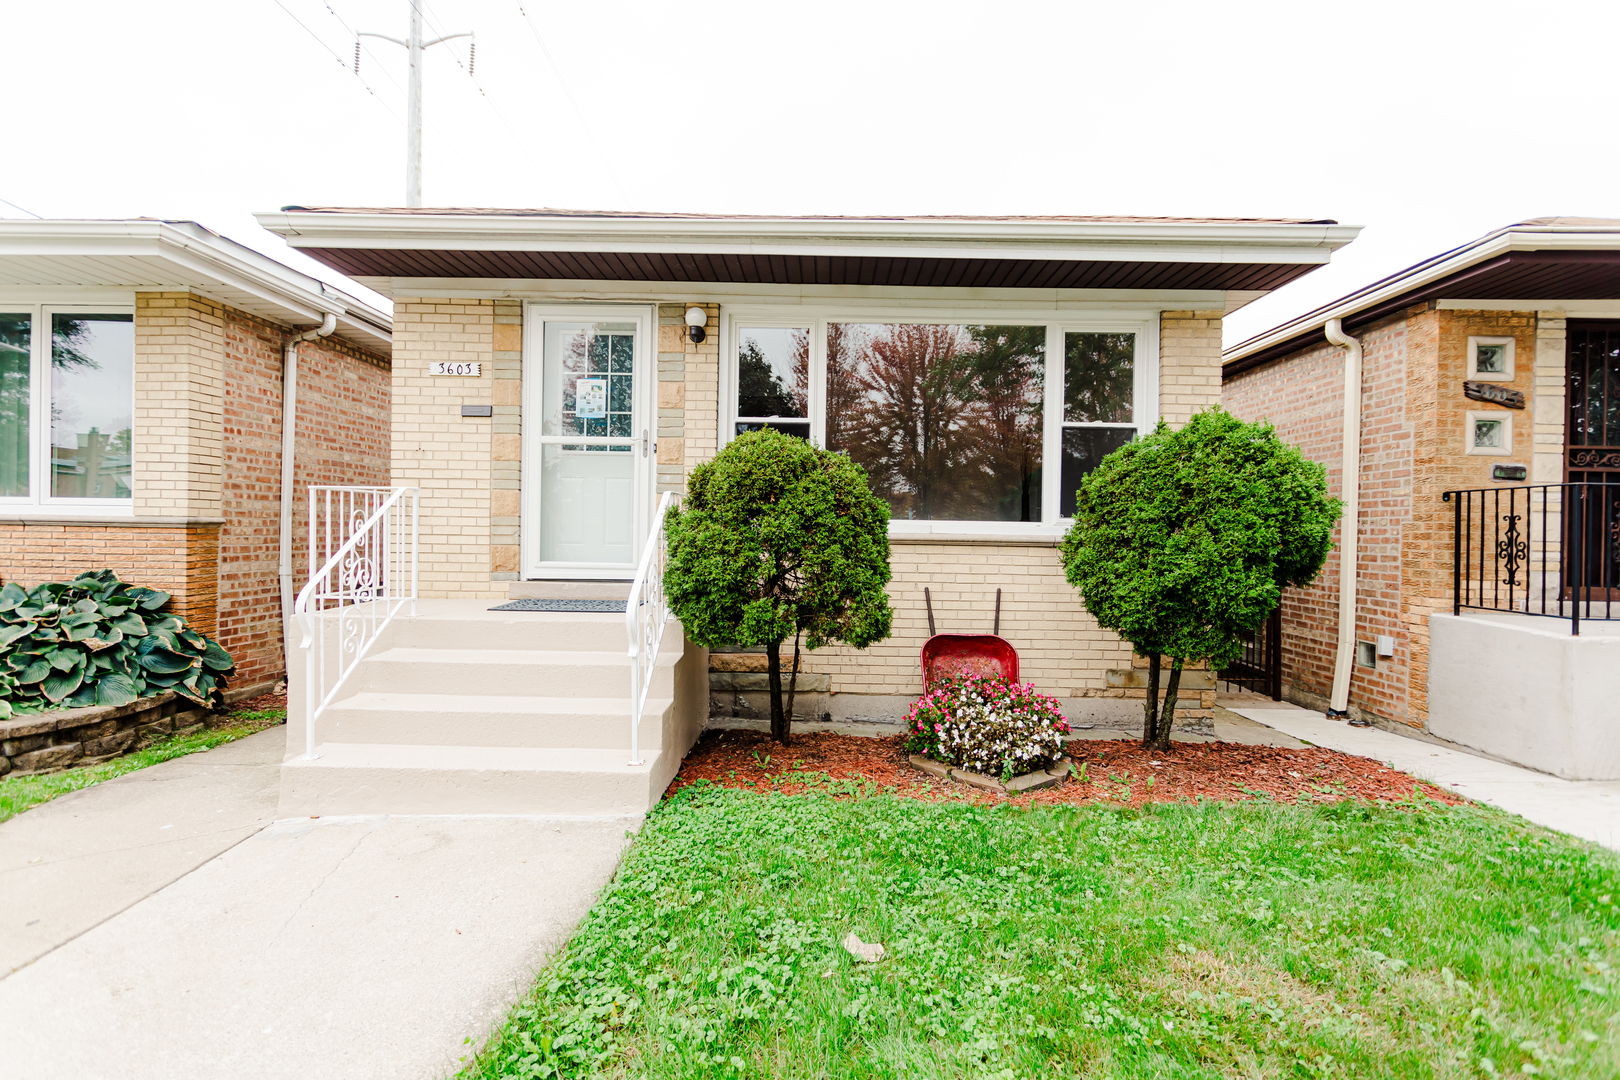 3603 W 83rd Place, Chicago IL 60652